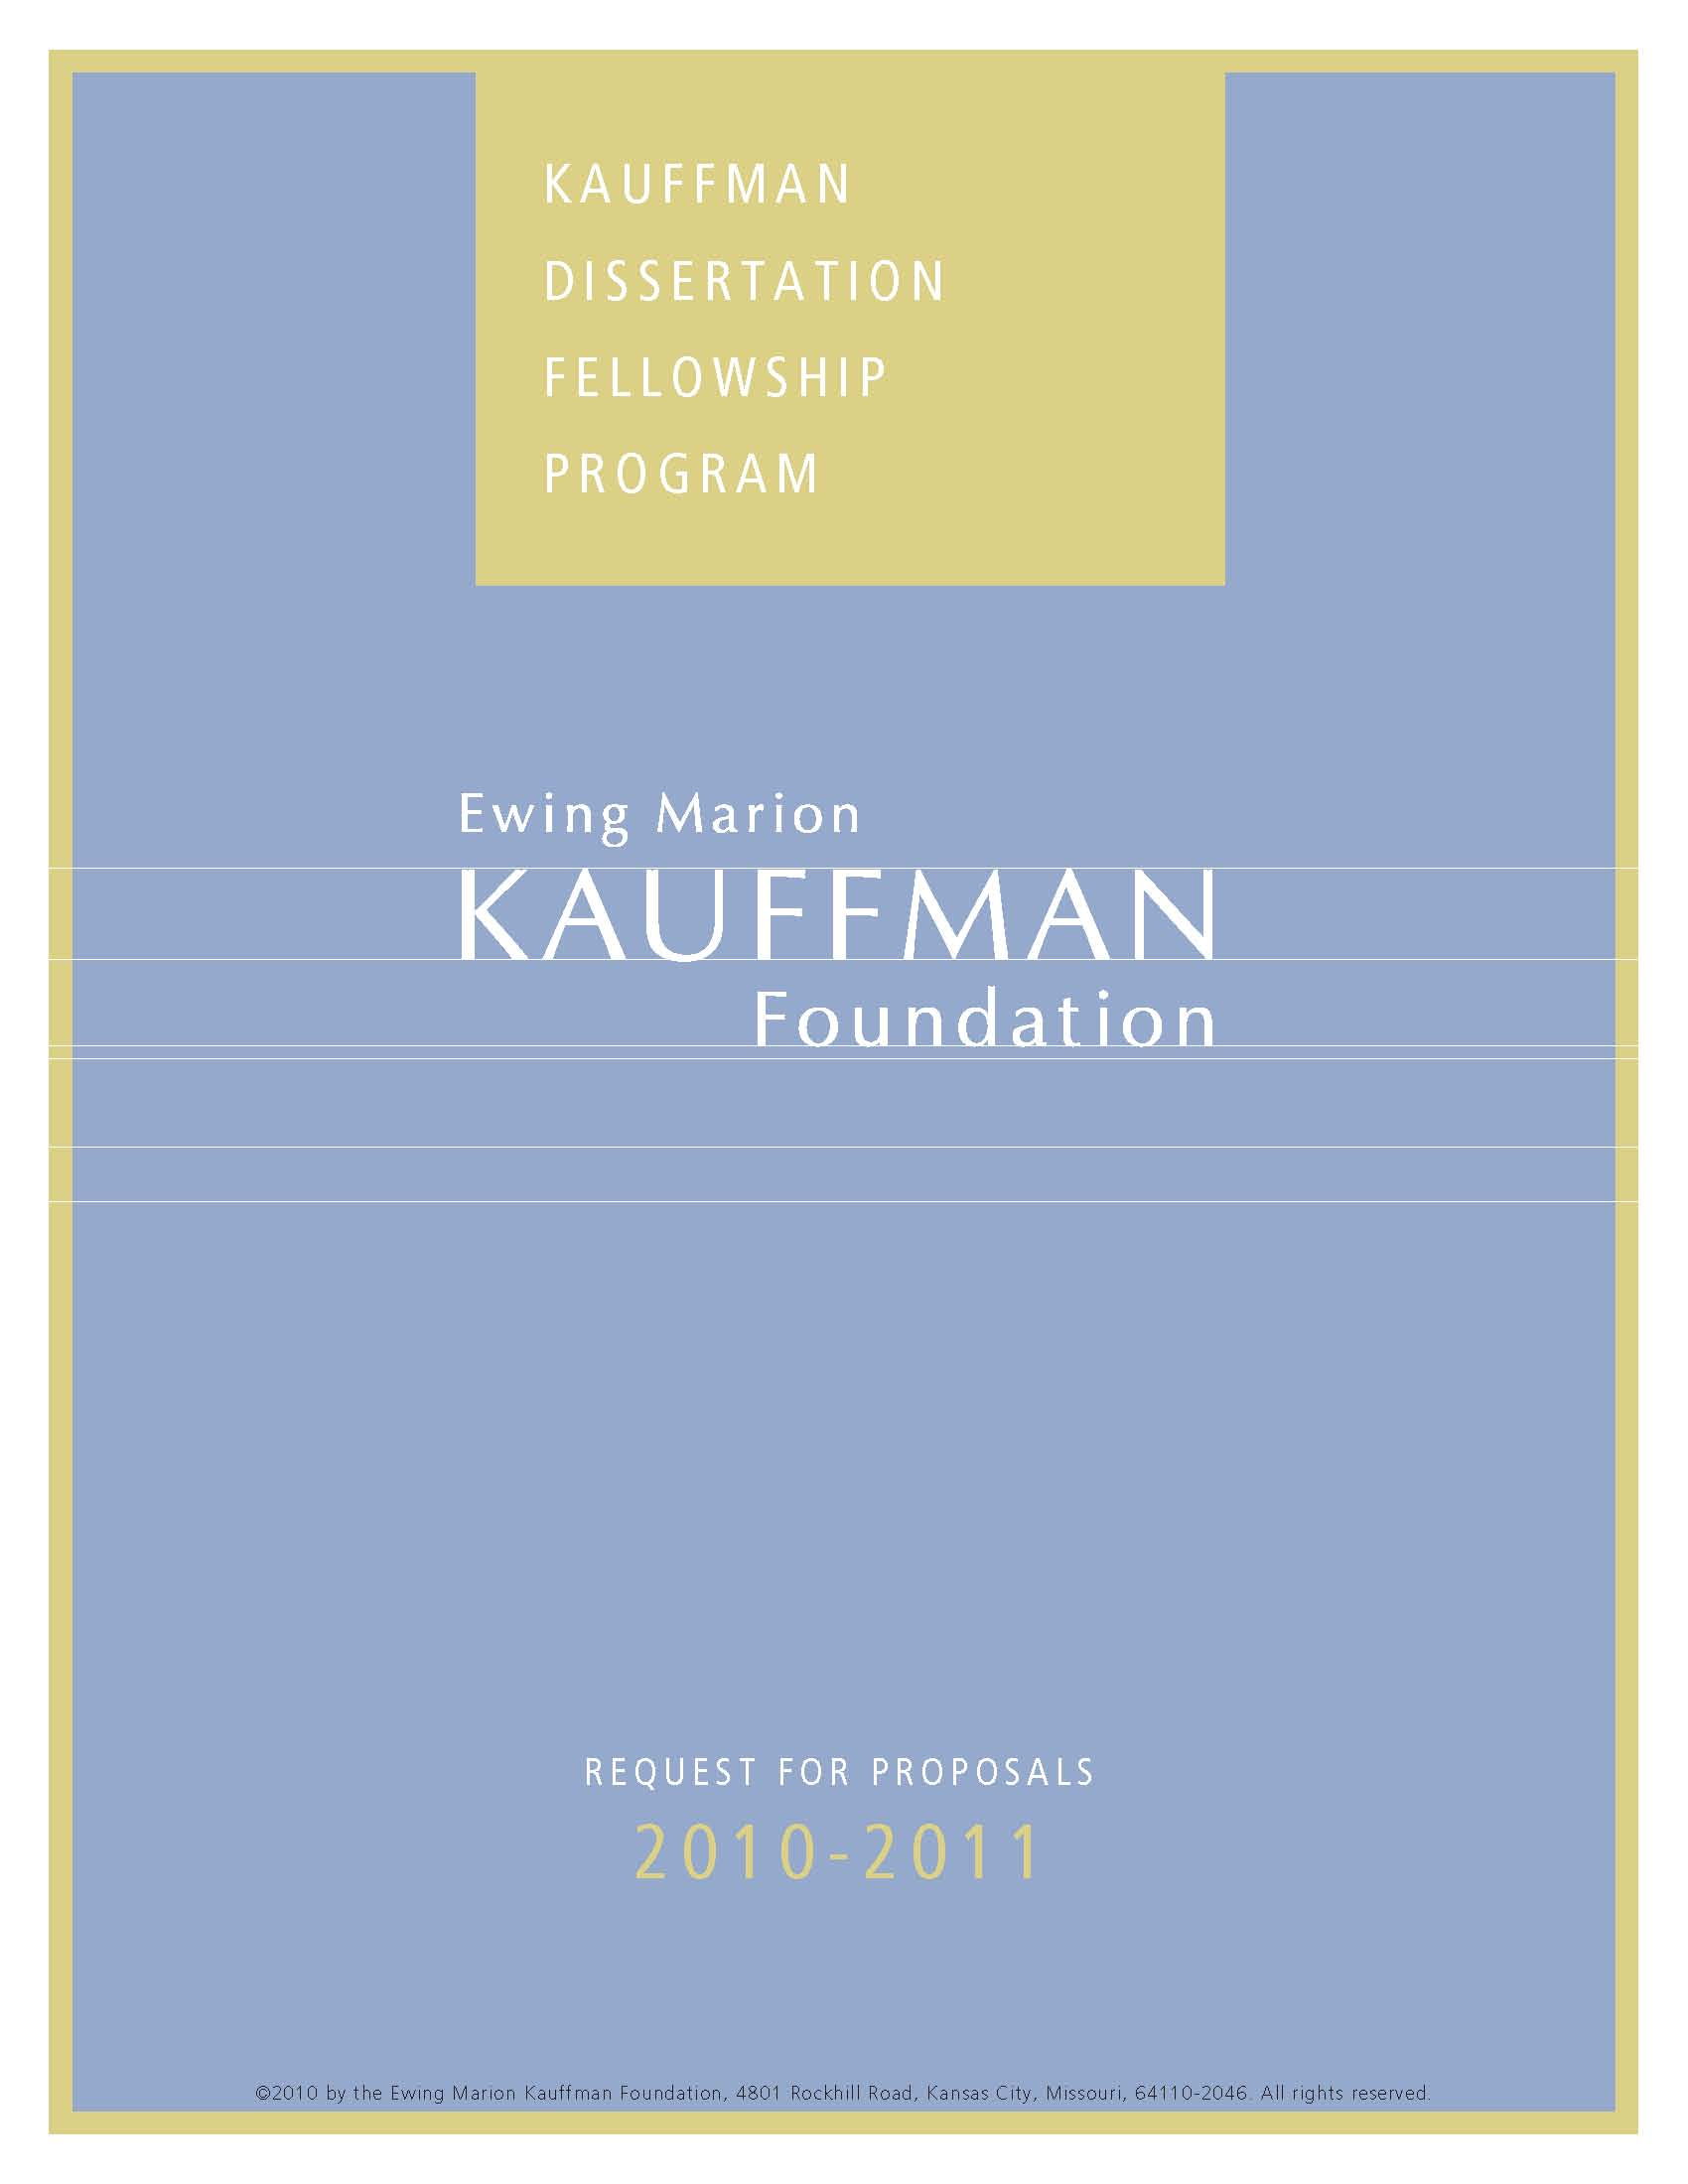 kauffman dissertation fellowship The kauffman dissertation fellowship (kdf) is an annual competitive program that awards up to 20 dissertation fellowship grants of $20,000 each to phd, dba, or other doctoral students at accredited us universities to support dissertations in the area of entrepreneurship.